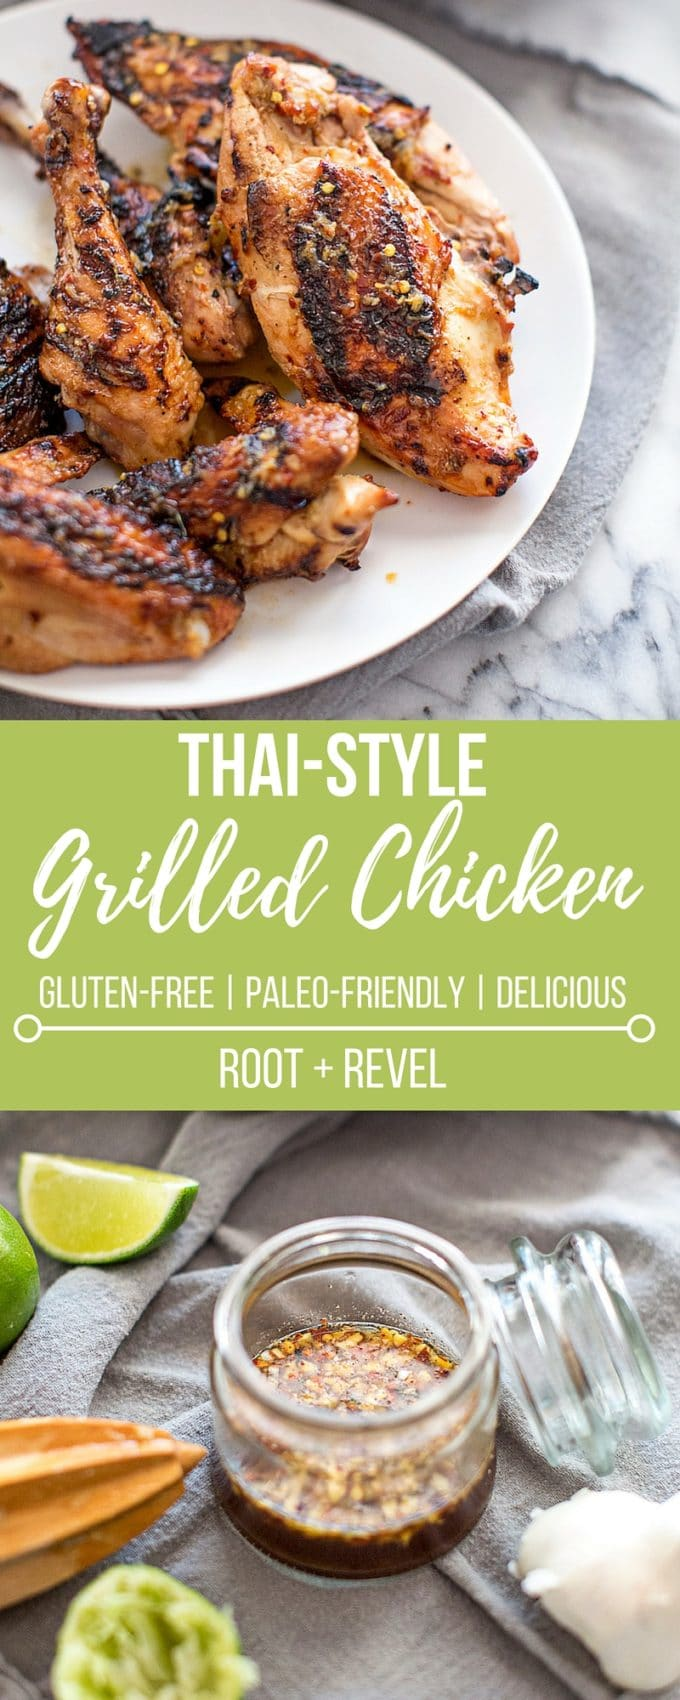 This Thai Grilled Chicken recipe is a fun twist on BBQ chicken with a bright and tangy Thai marinade. Thai chicken is easy, healthy and bursting with authentic flavor, the perfect American meets Thai food recipe for summer grilling.